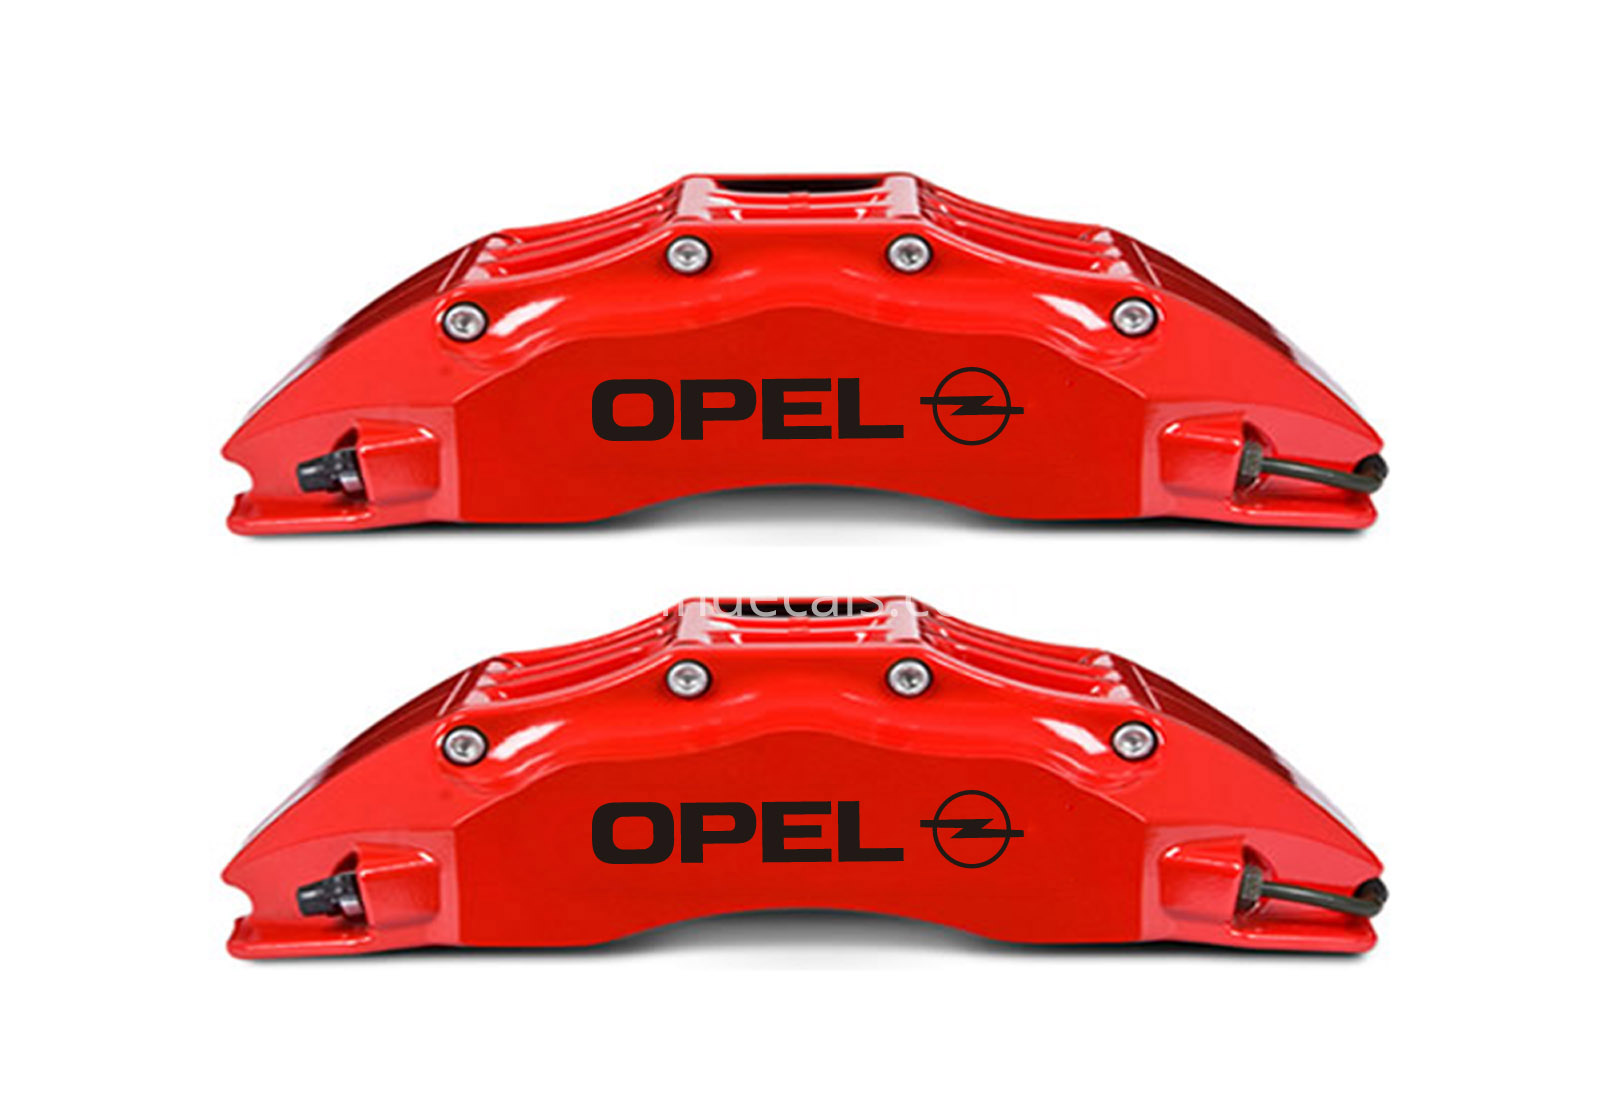 6 x Opel Stickers for Brakes - Black